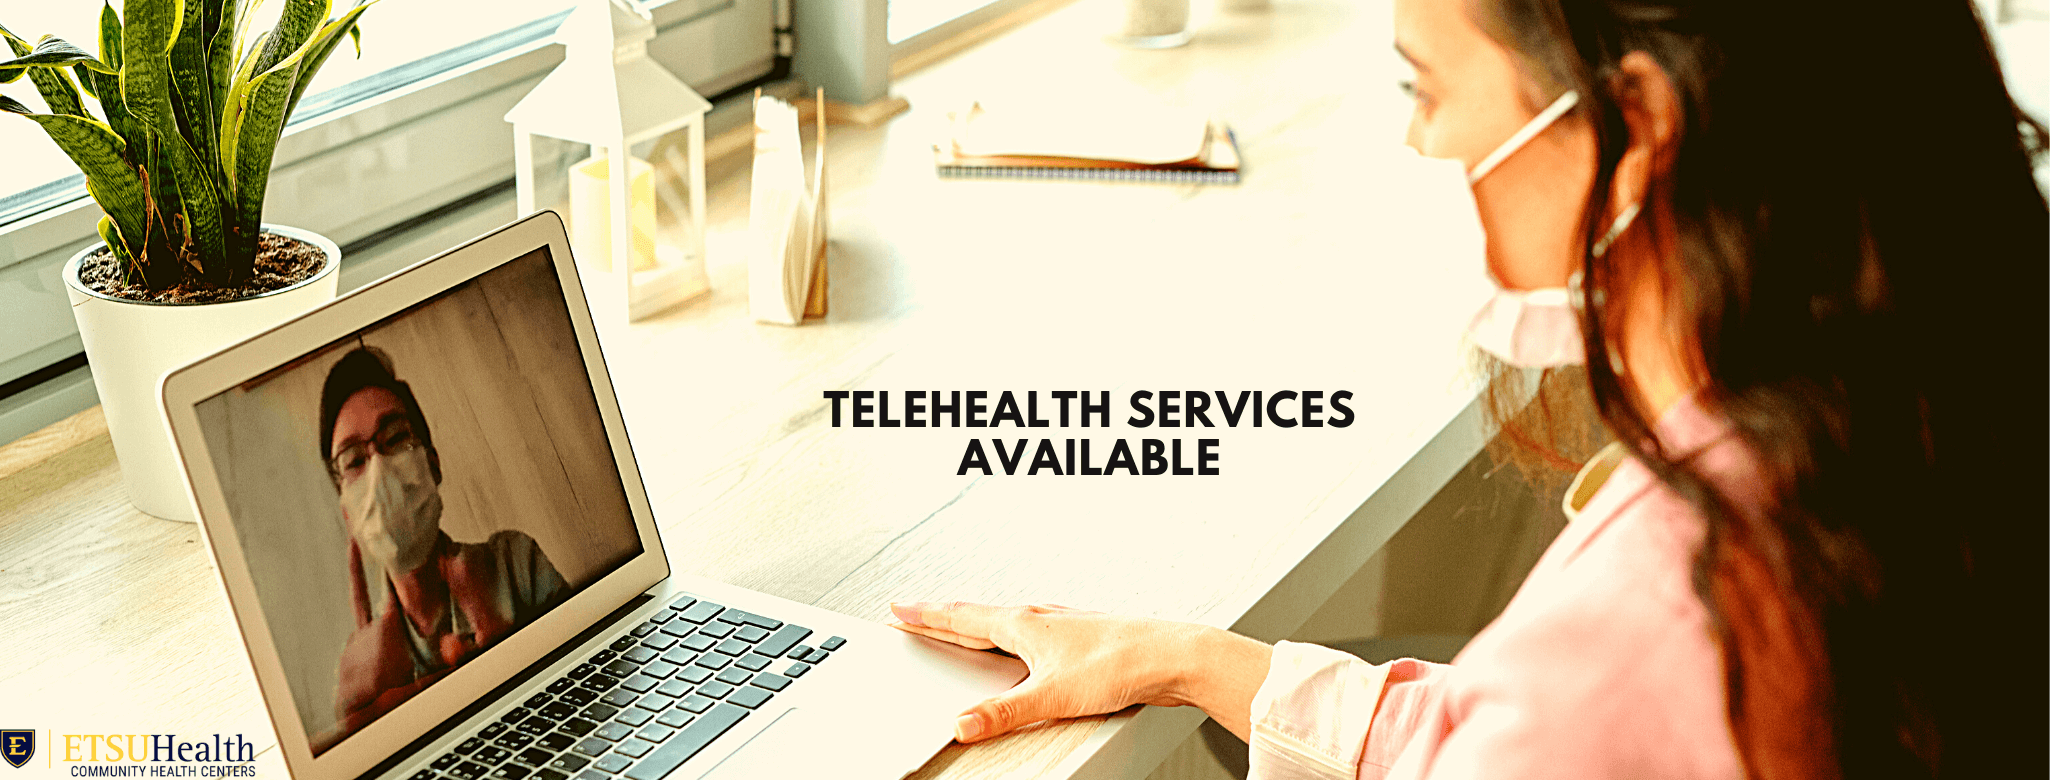 We provide Telehealth services wherever you are.